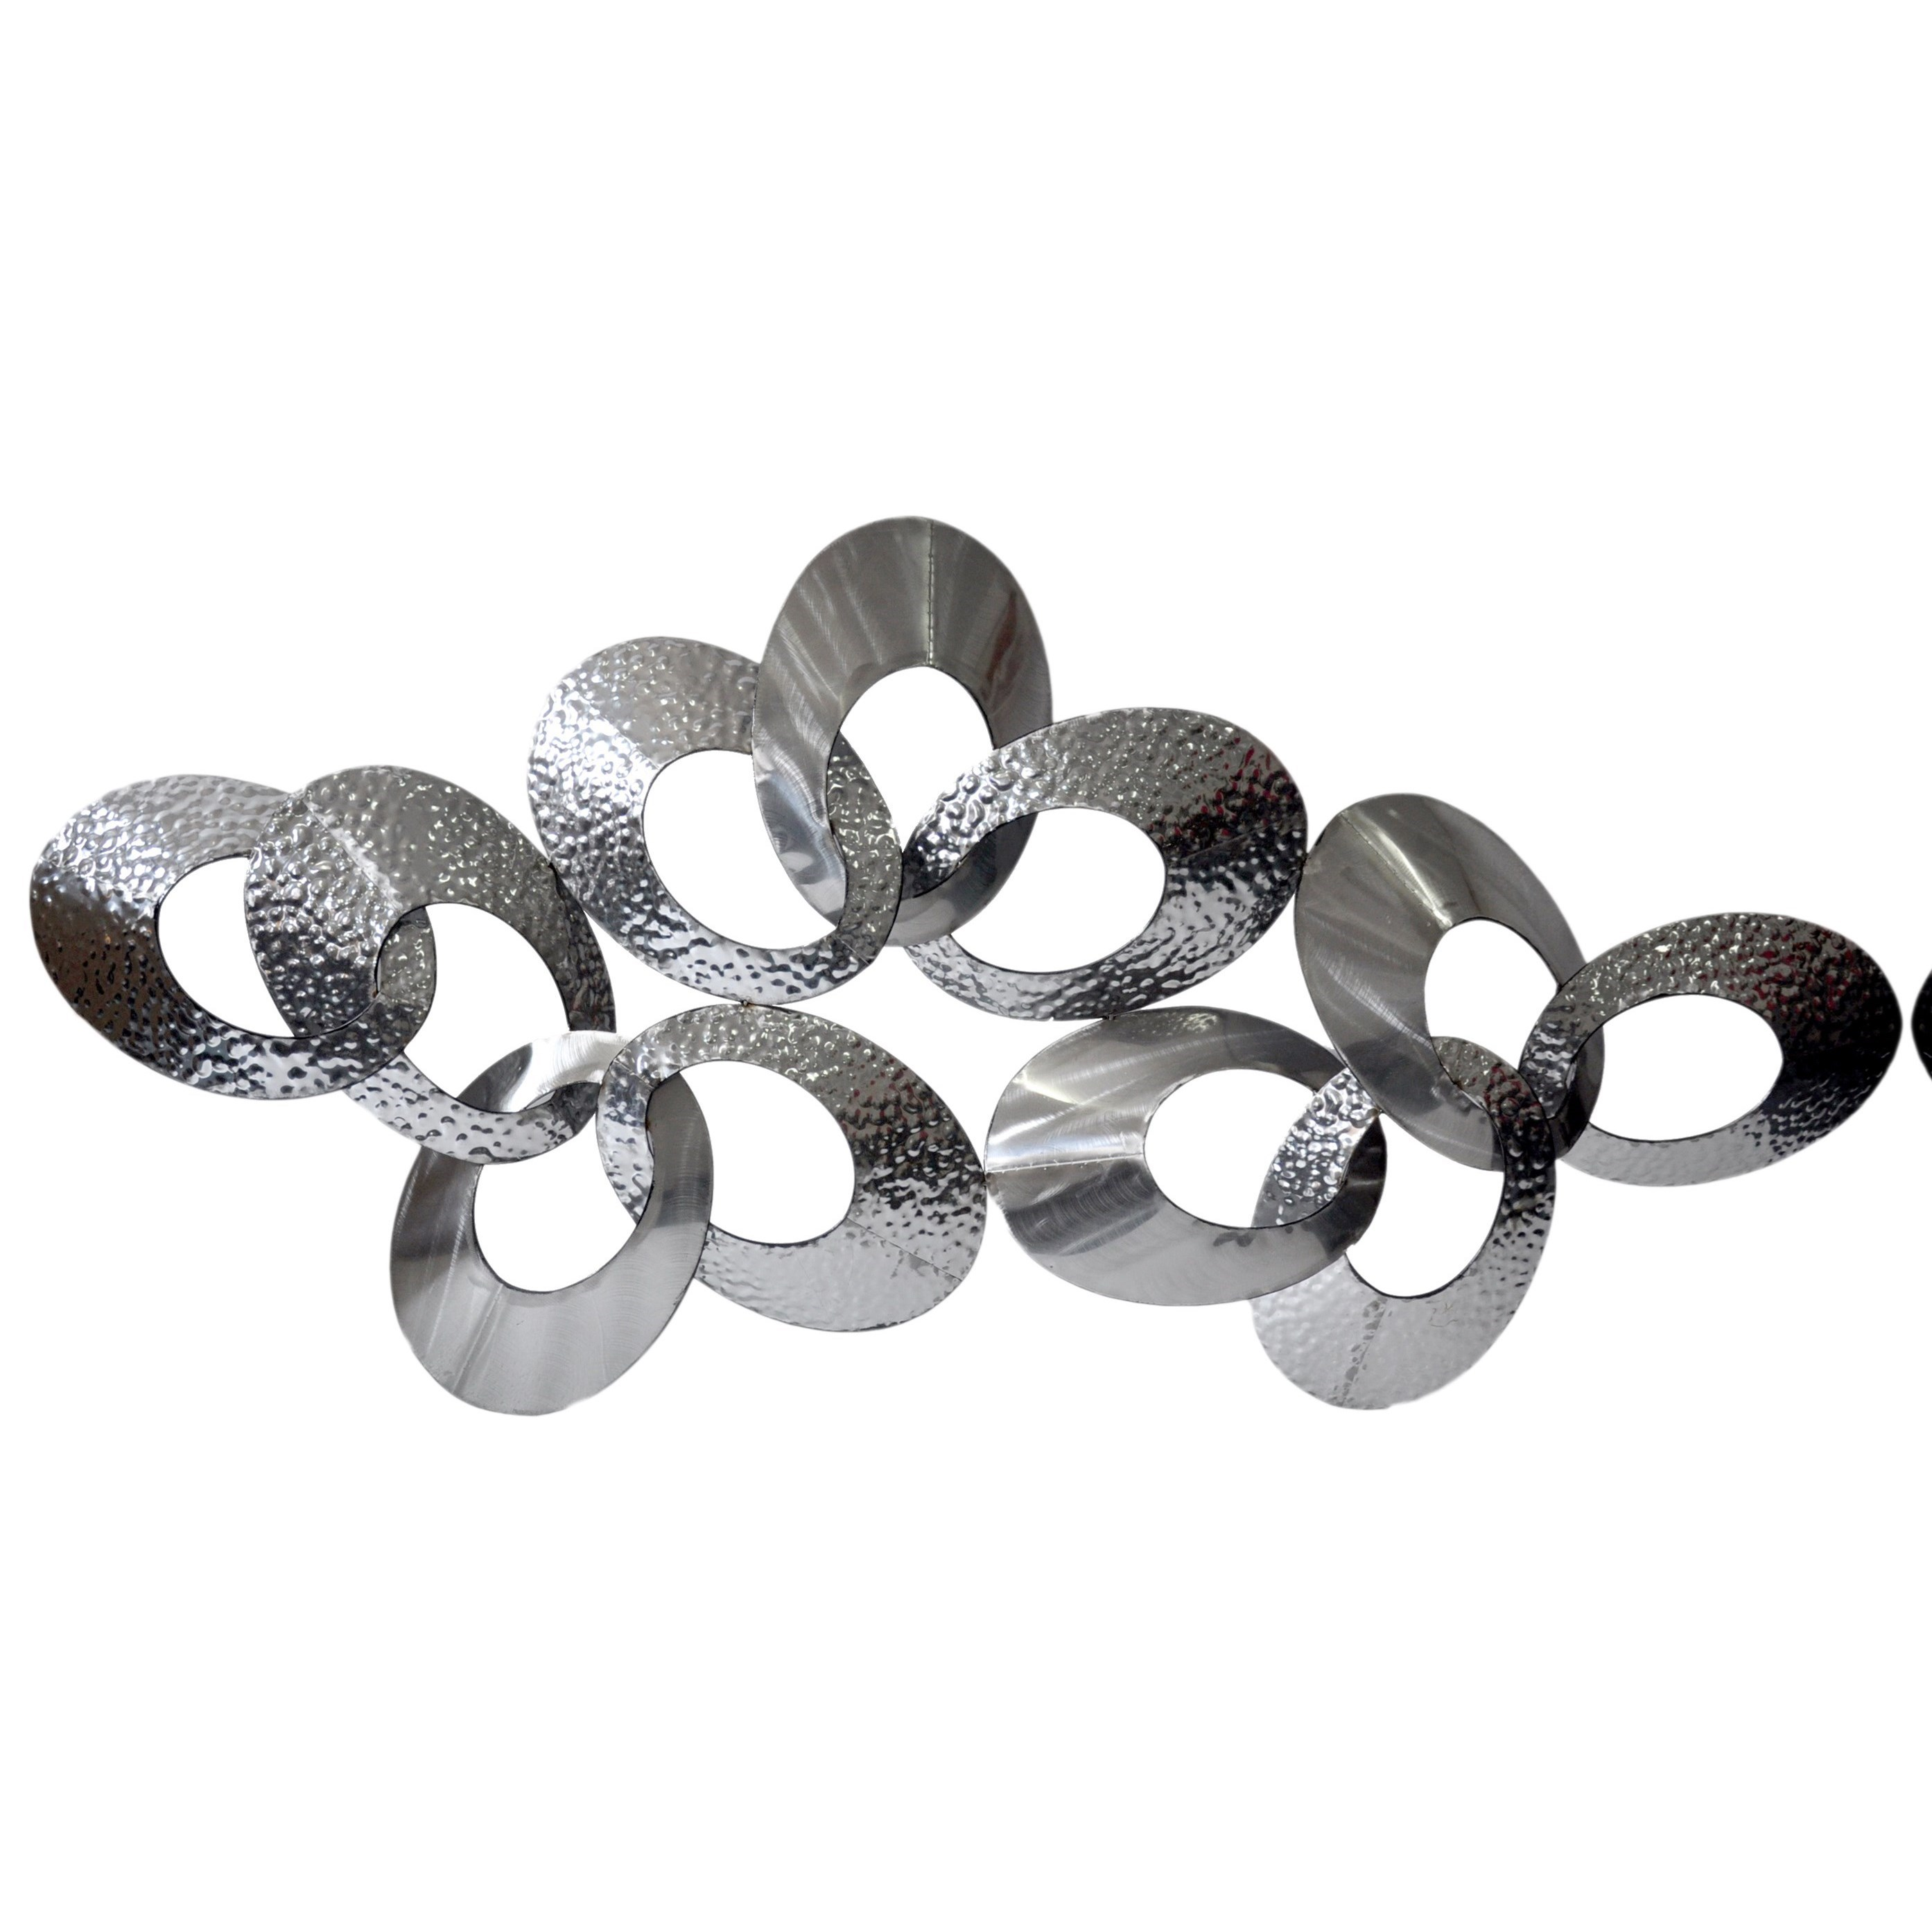 Wall Décor Looped Metal Wall Decor Large by Moe's Home Collection at Stoney Creek Furniture